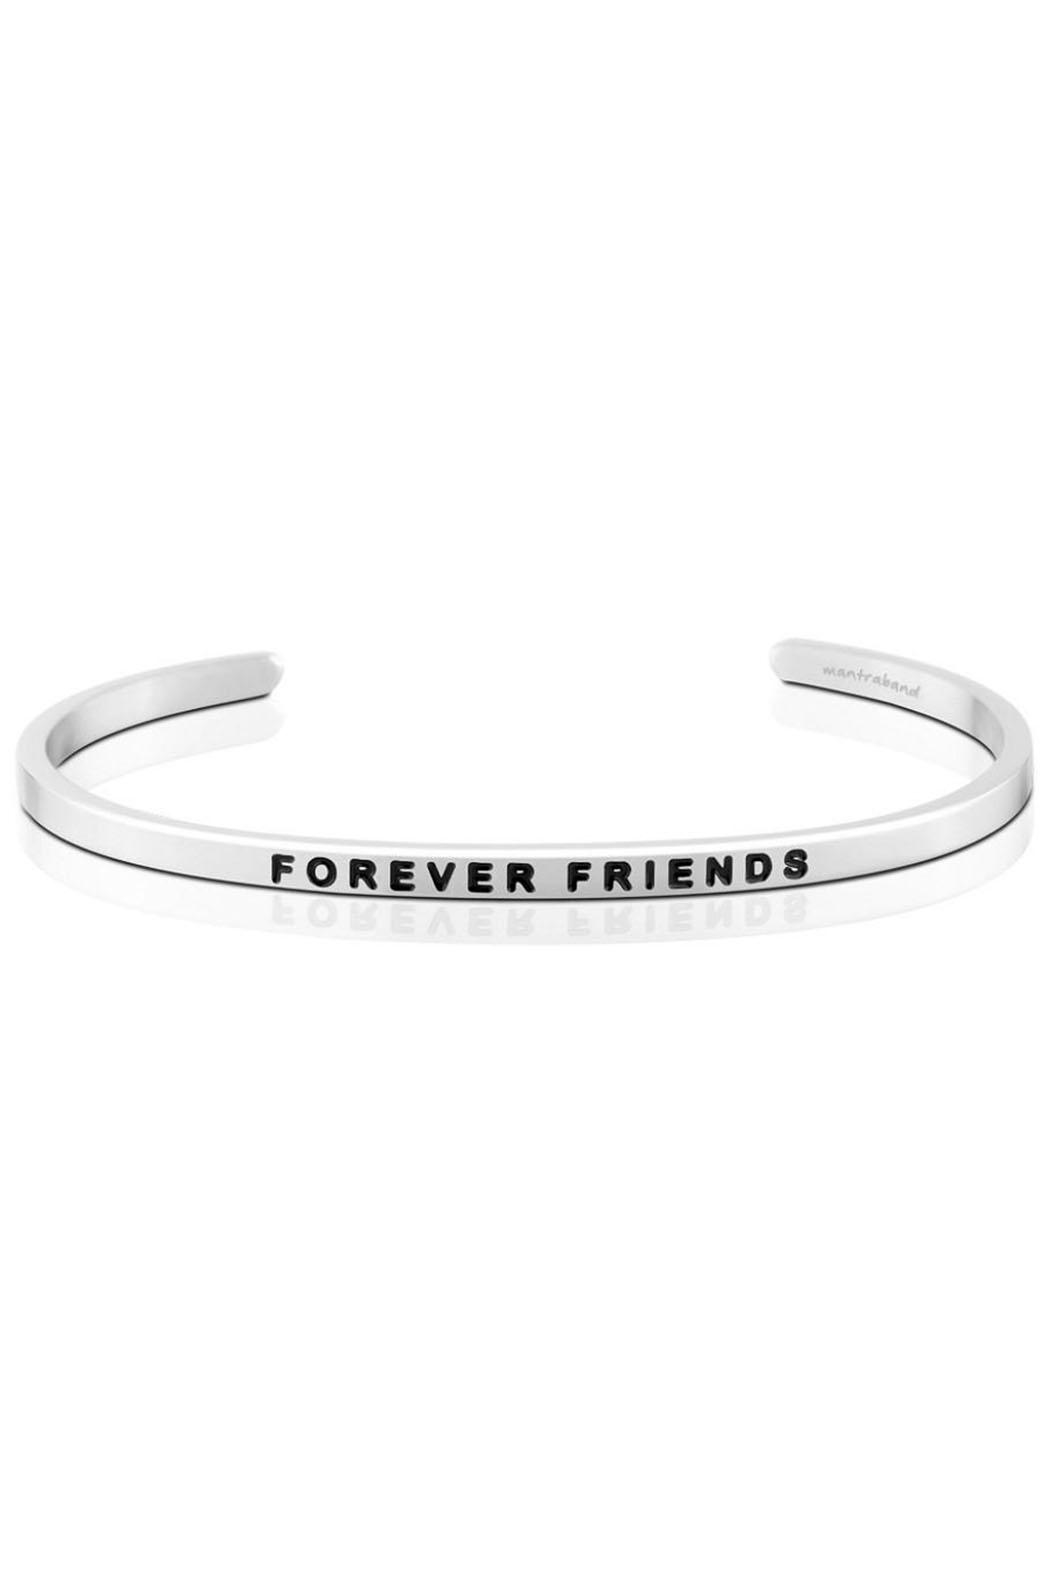 Mantraband Forever Friends - Main Image